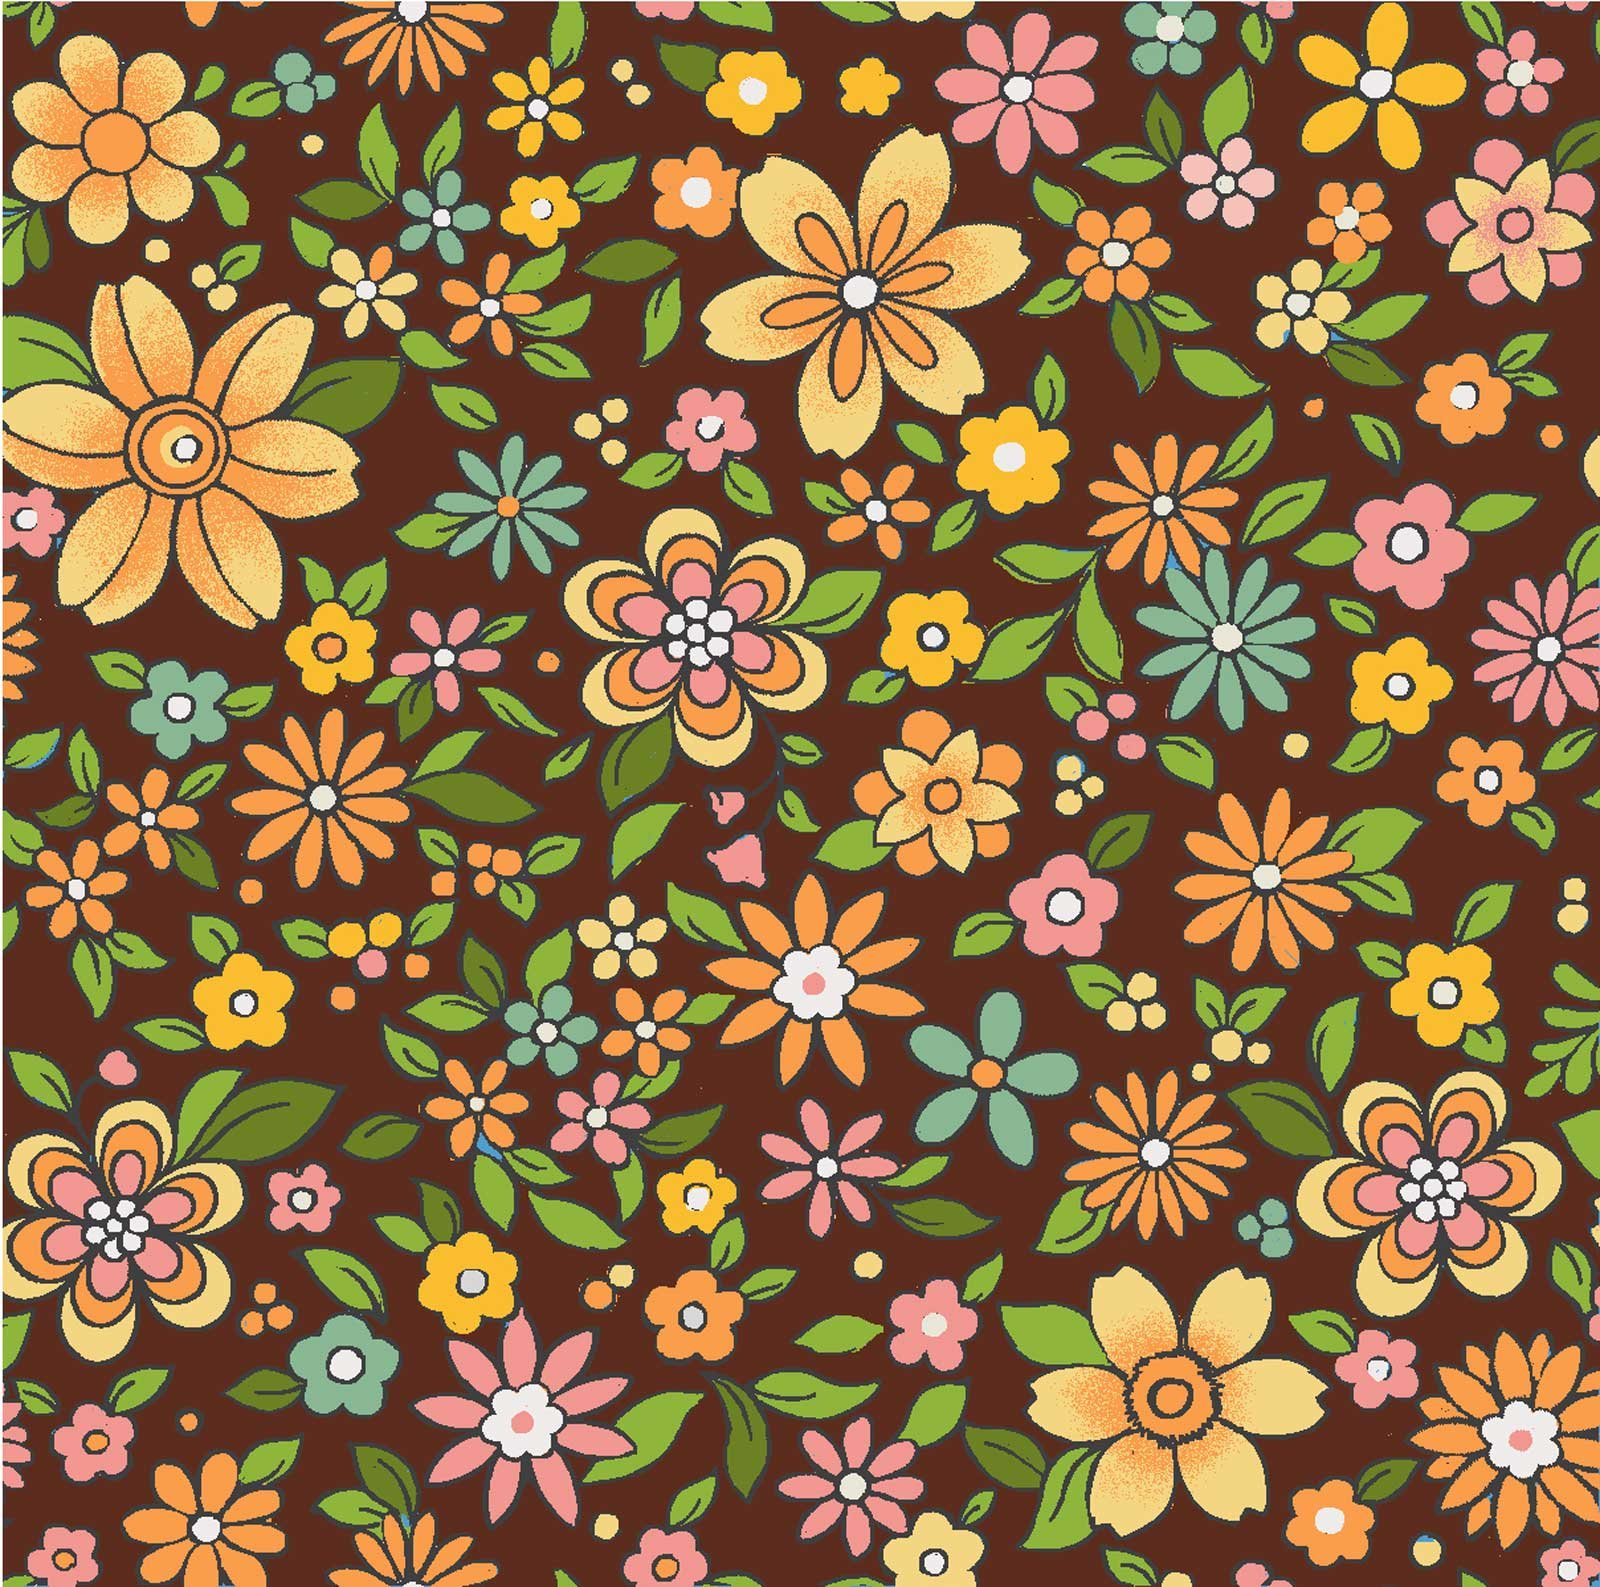 Boho Chic Brown Floral